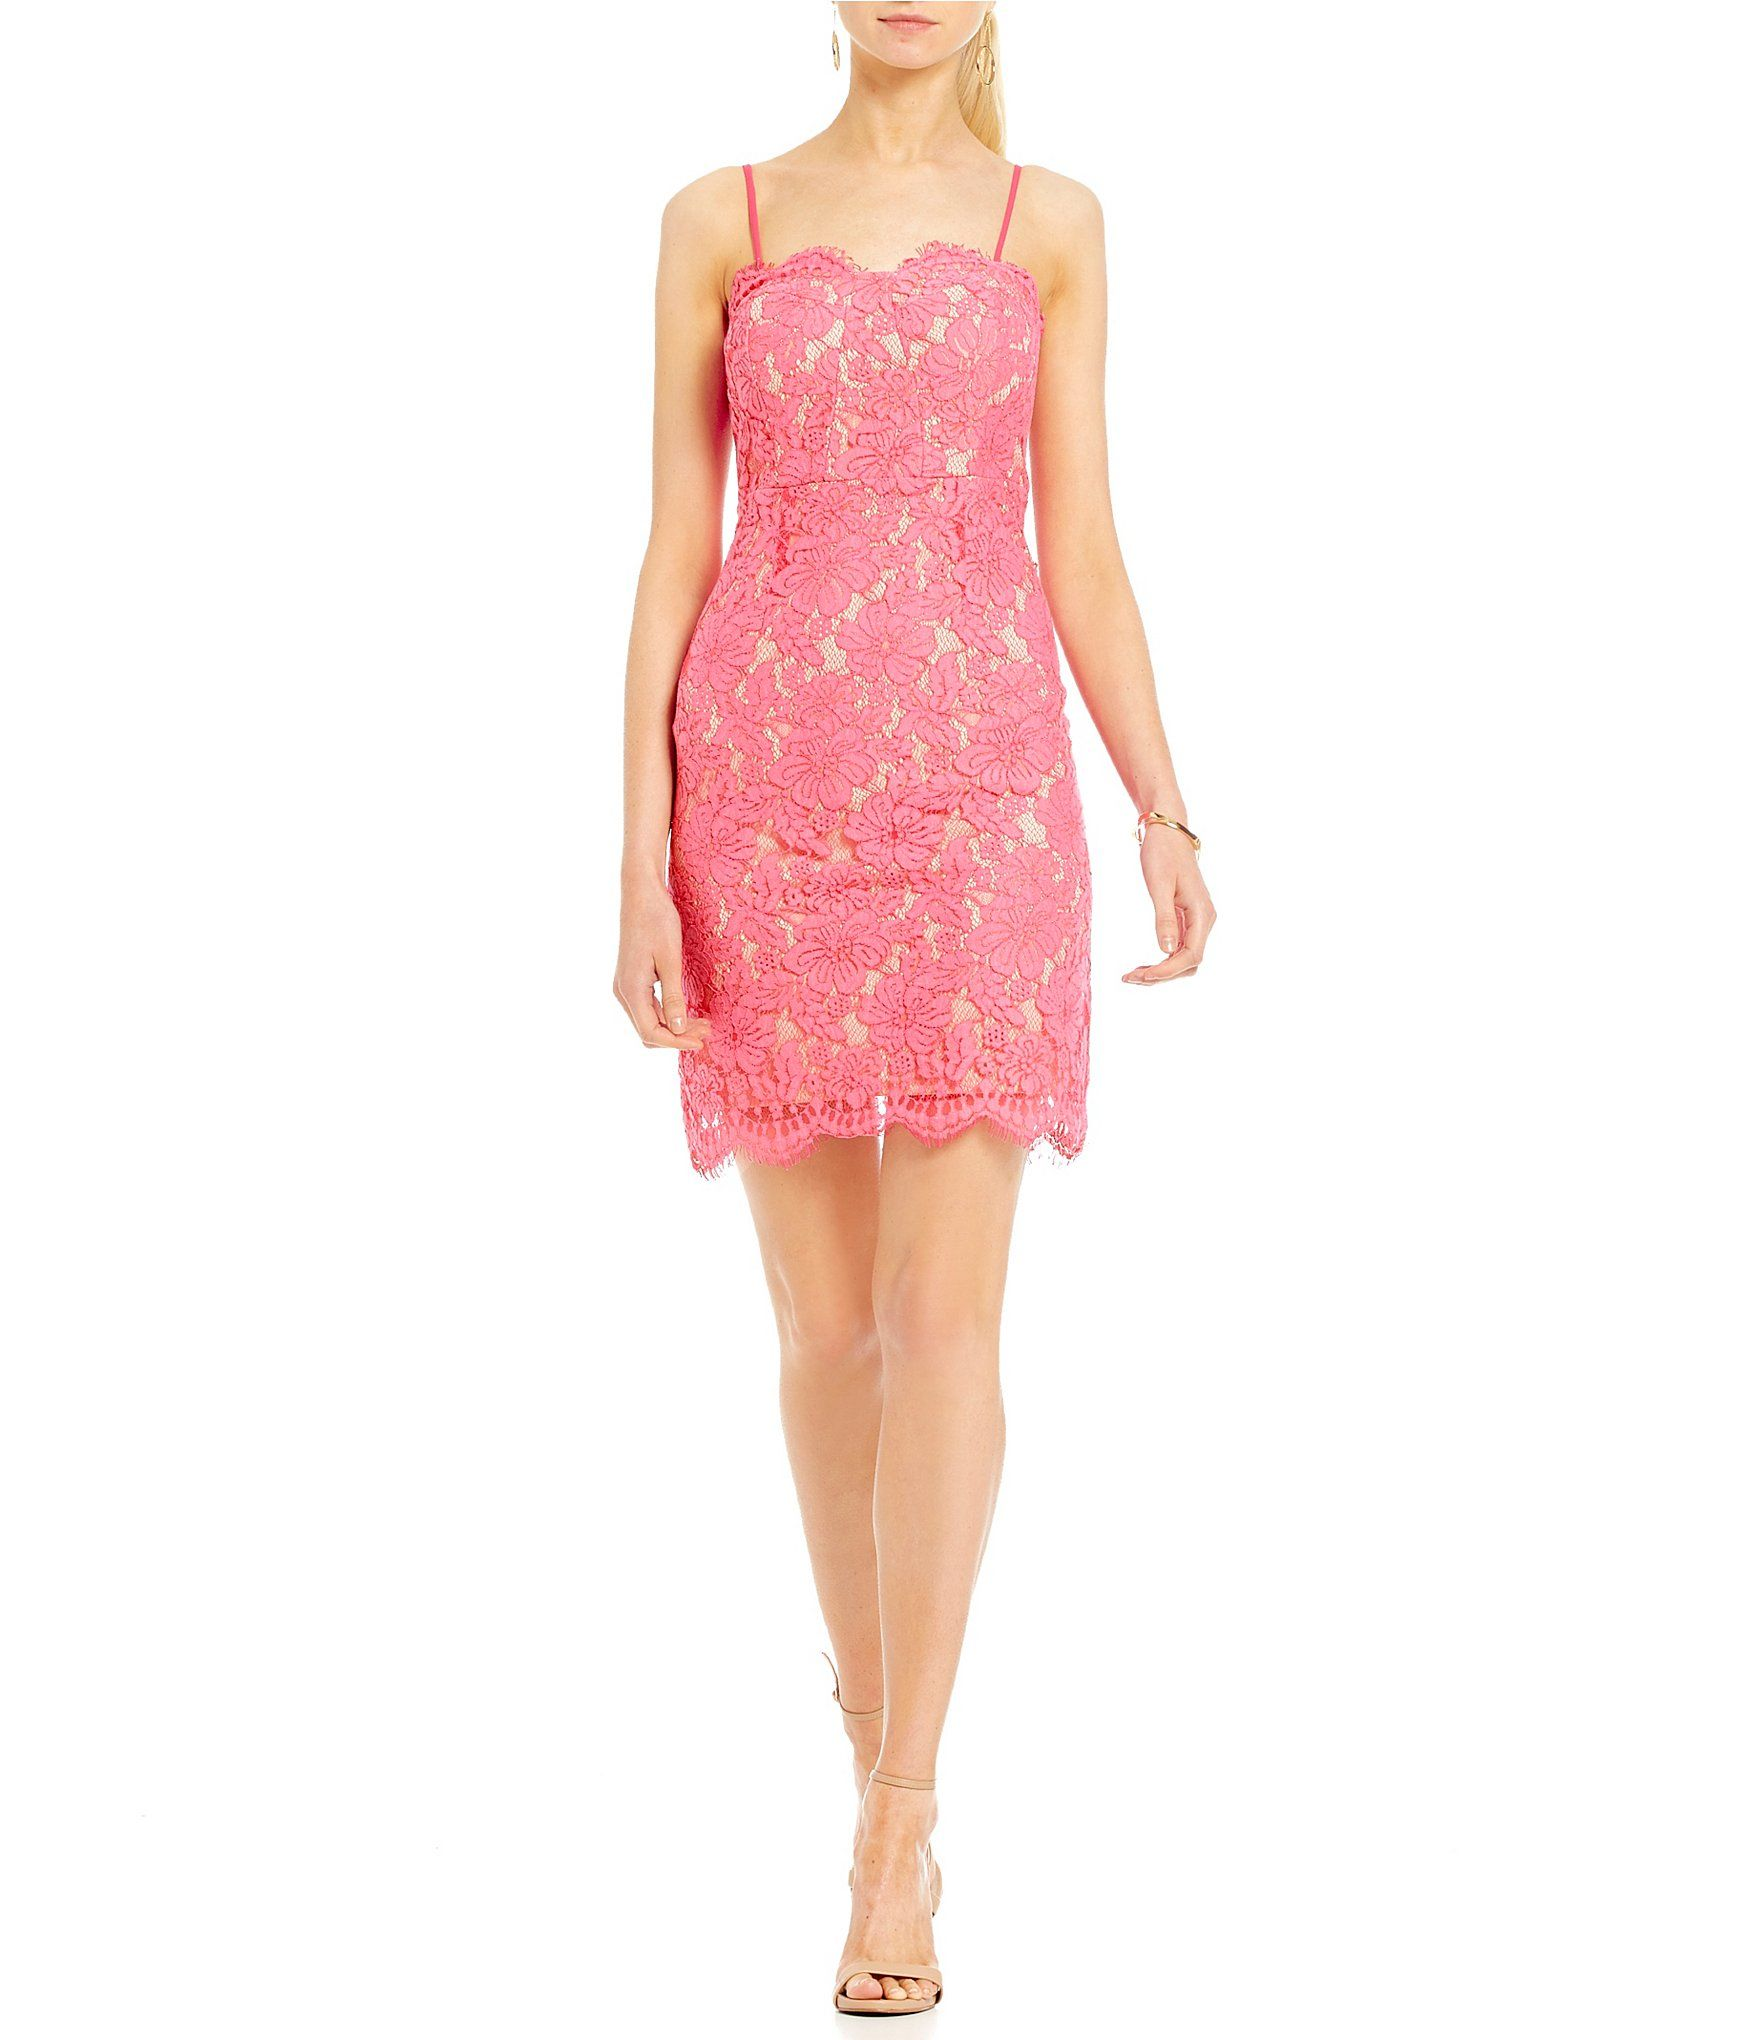 Mystic spaghetti strap lace sheath dress lace sheath dress